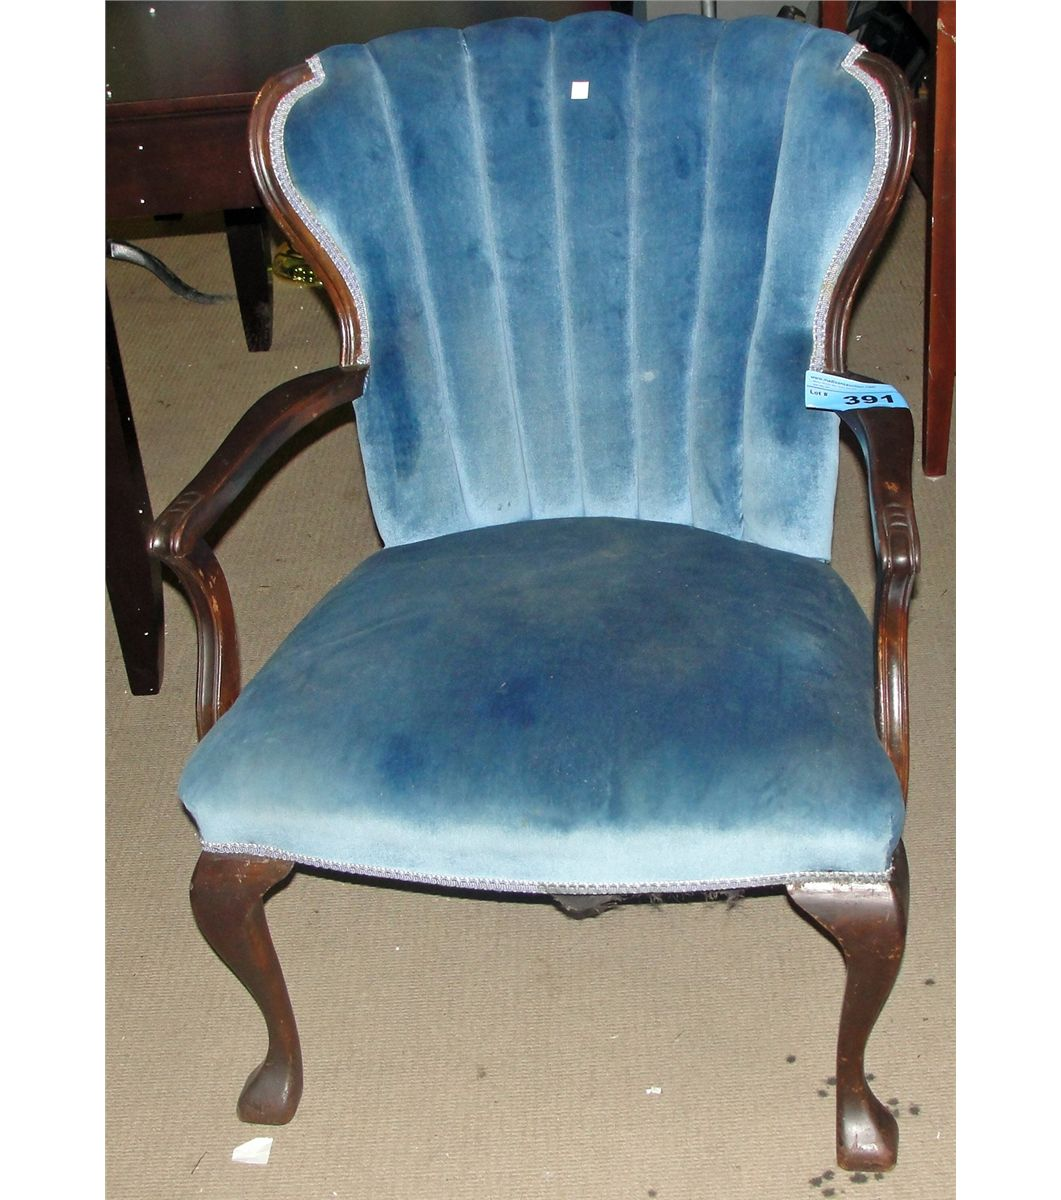 Lovely Antique Blue Valour Upholstered Fan Back Arm Chair. Loading Zoom